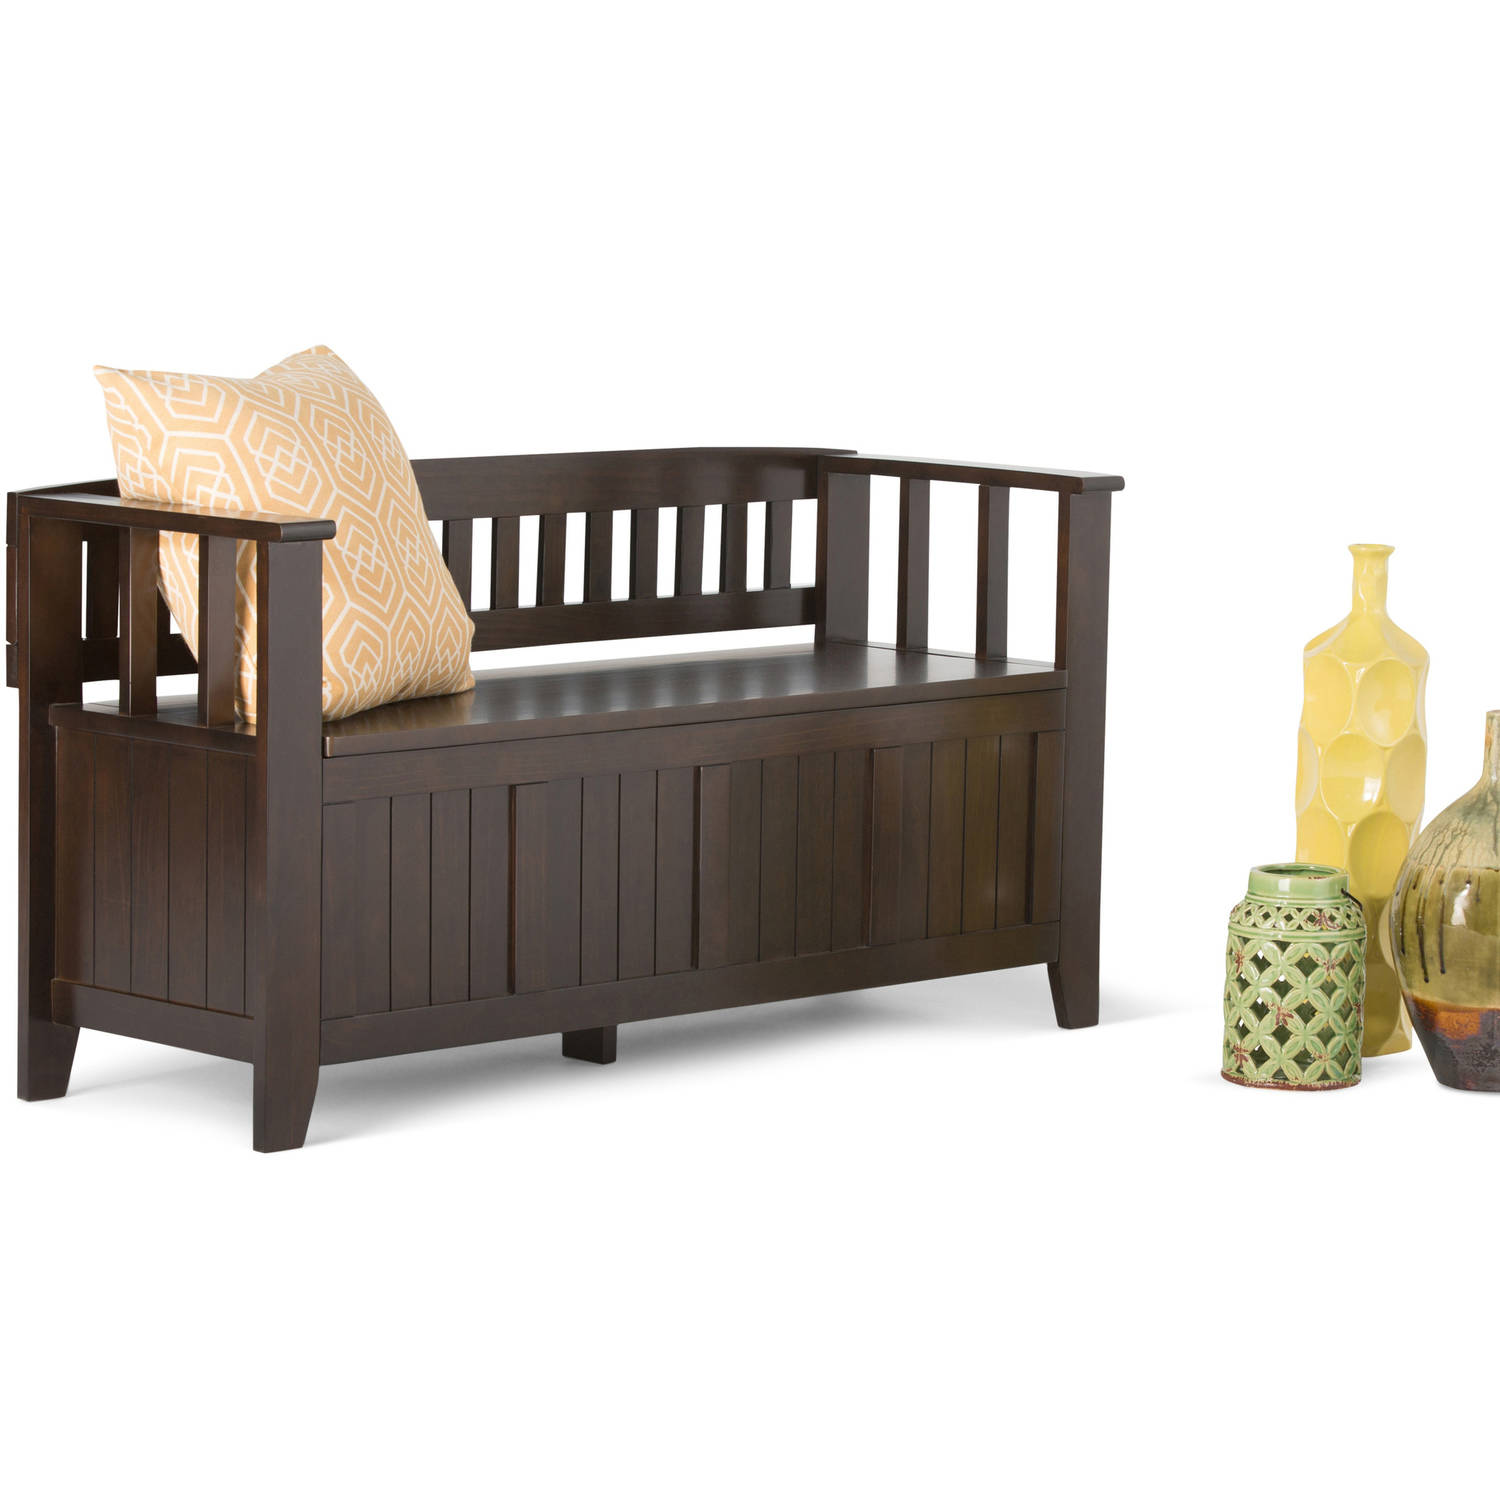 Acadian Entryway Storage Bench by CCT Global Sourcing Inc